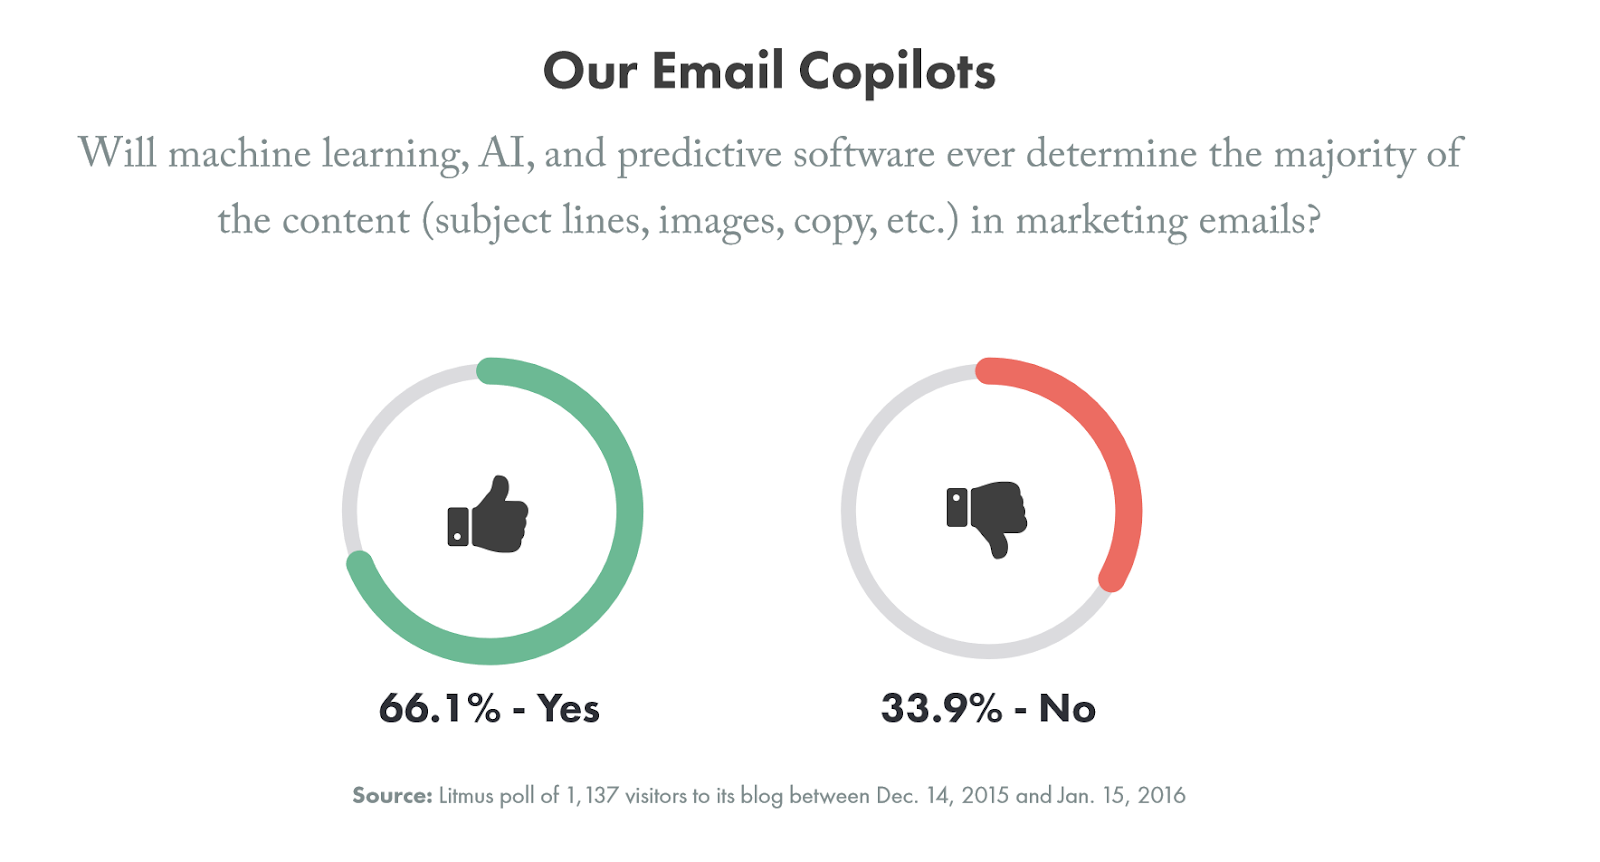 AI and predictive technology use in email.